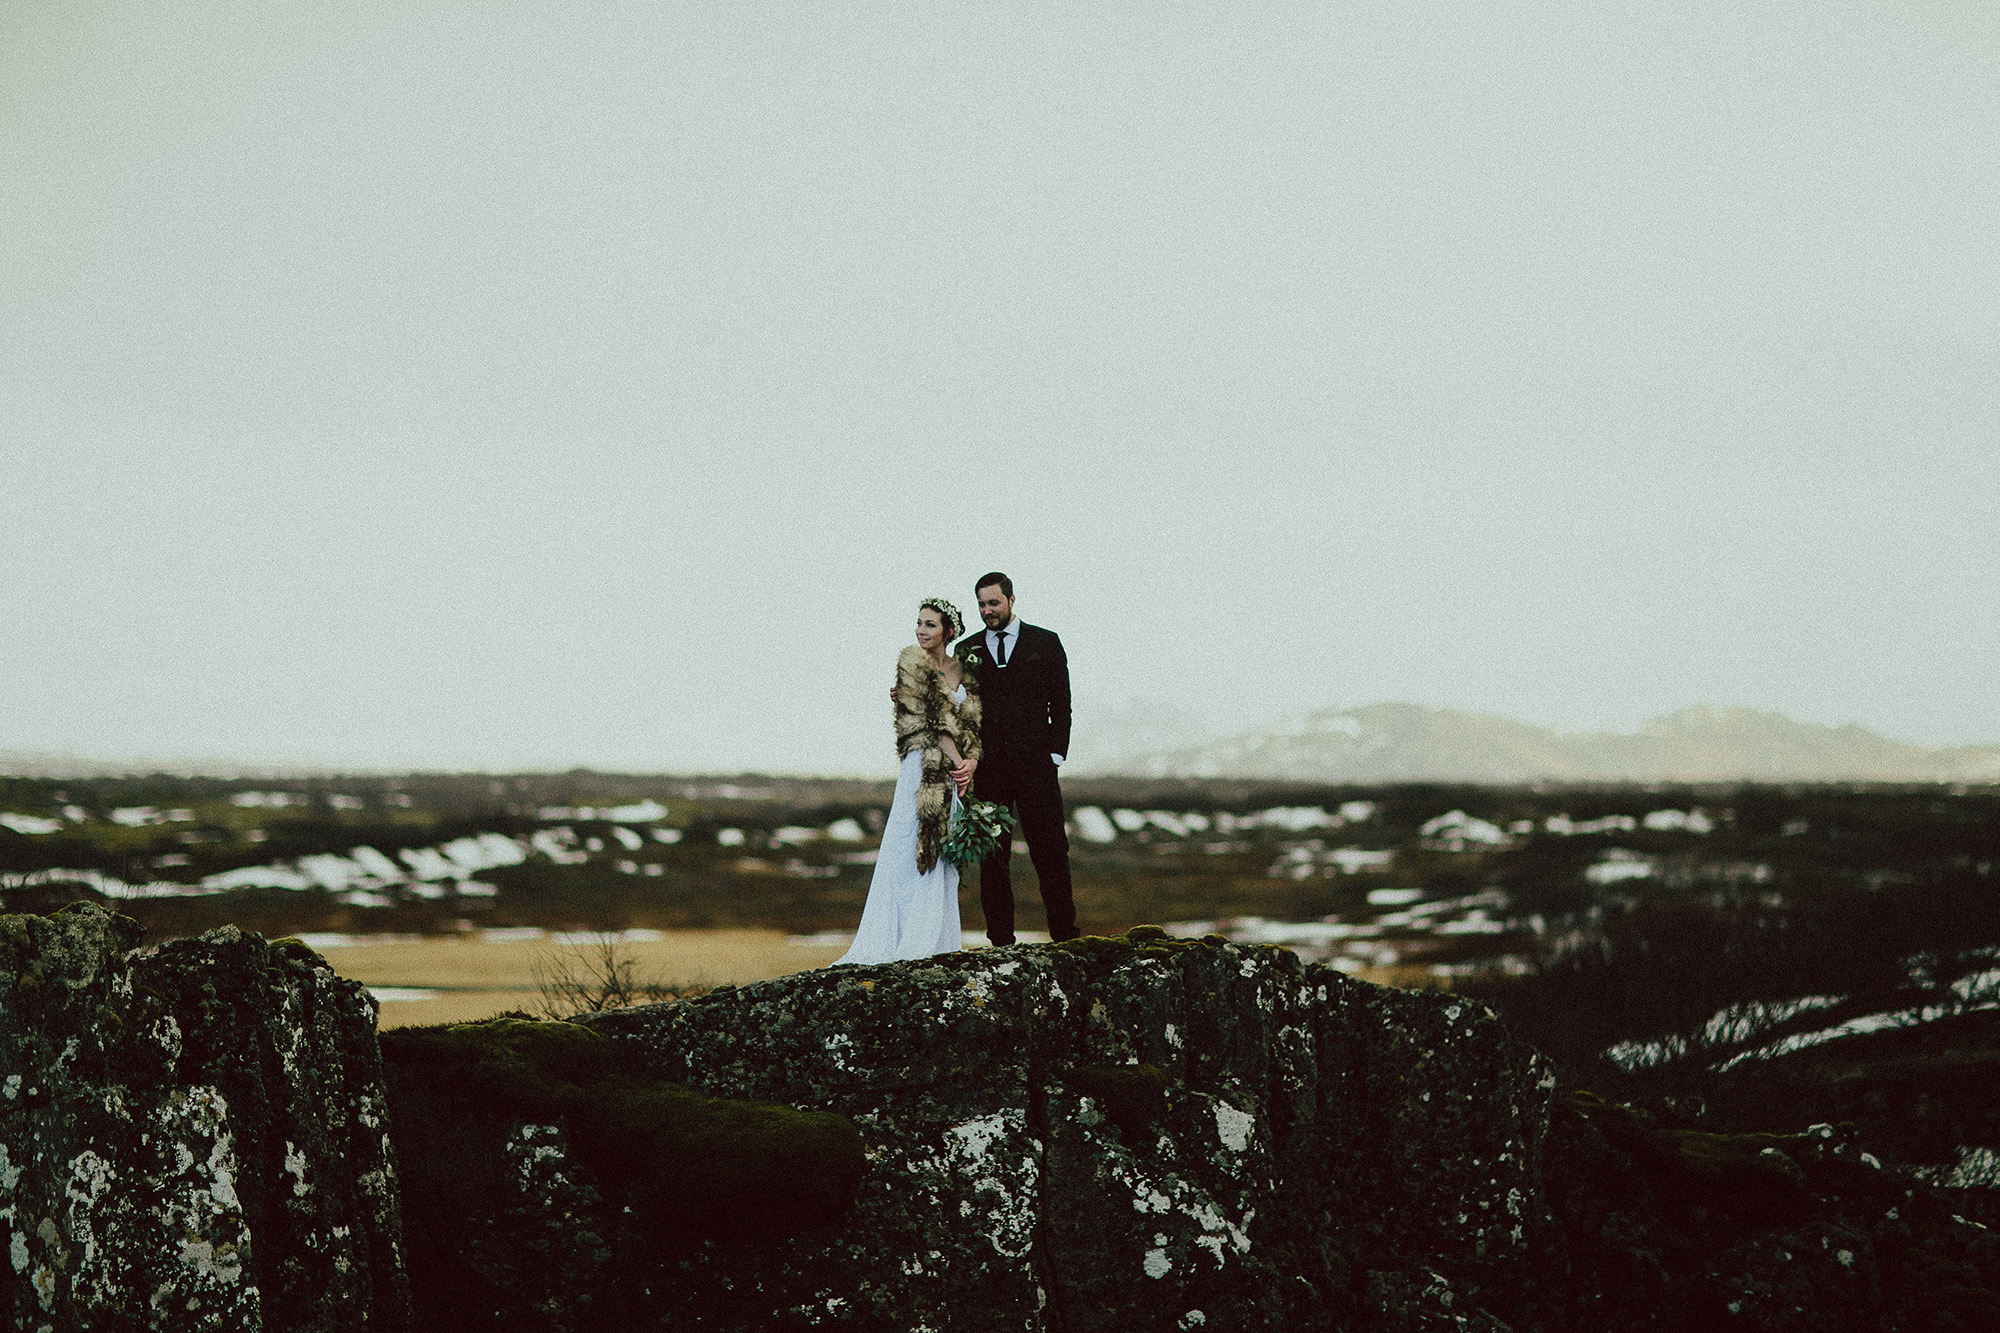 Forged_in_the_North_-_Iceland_Destination_Wedding_6.jpg